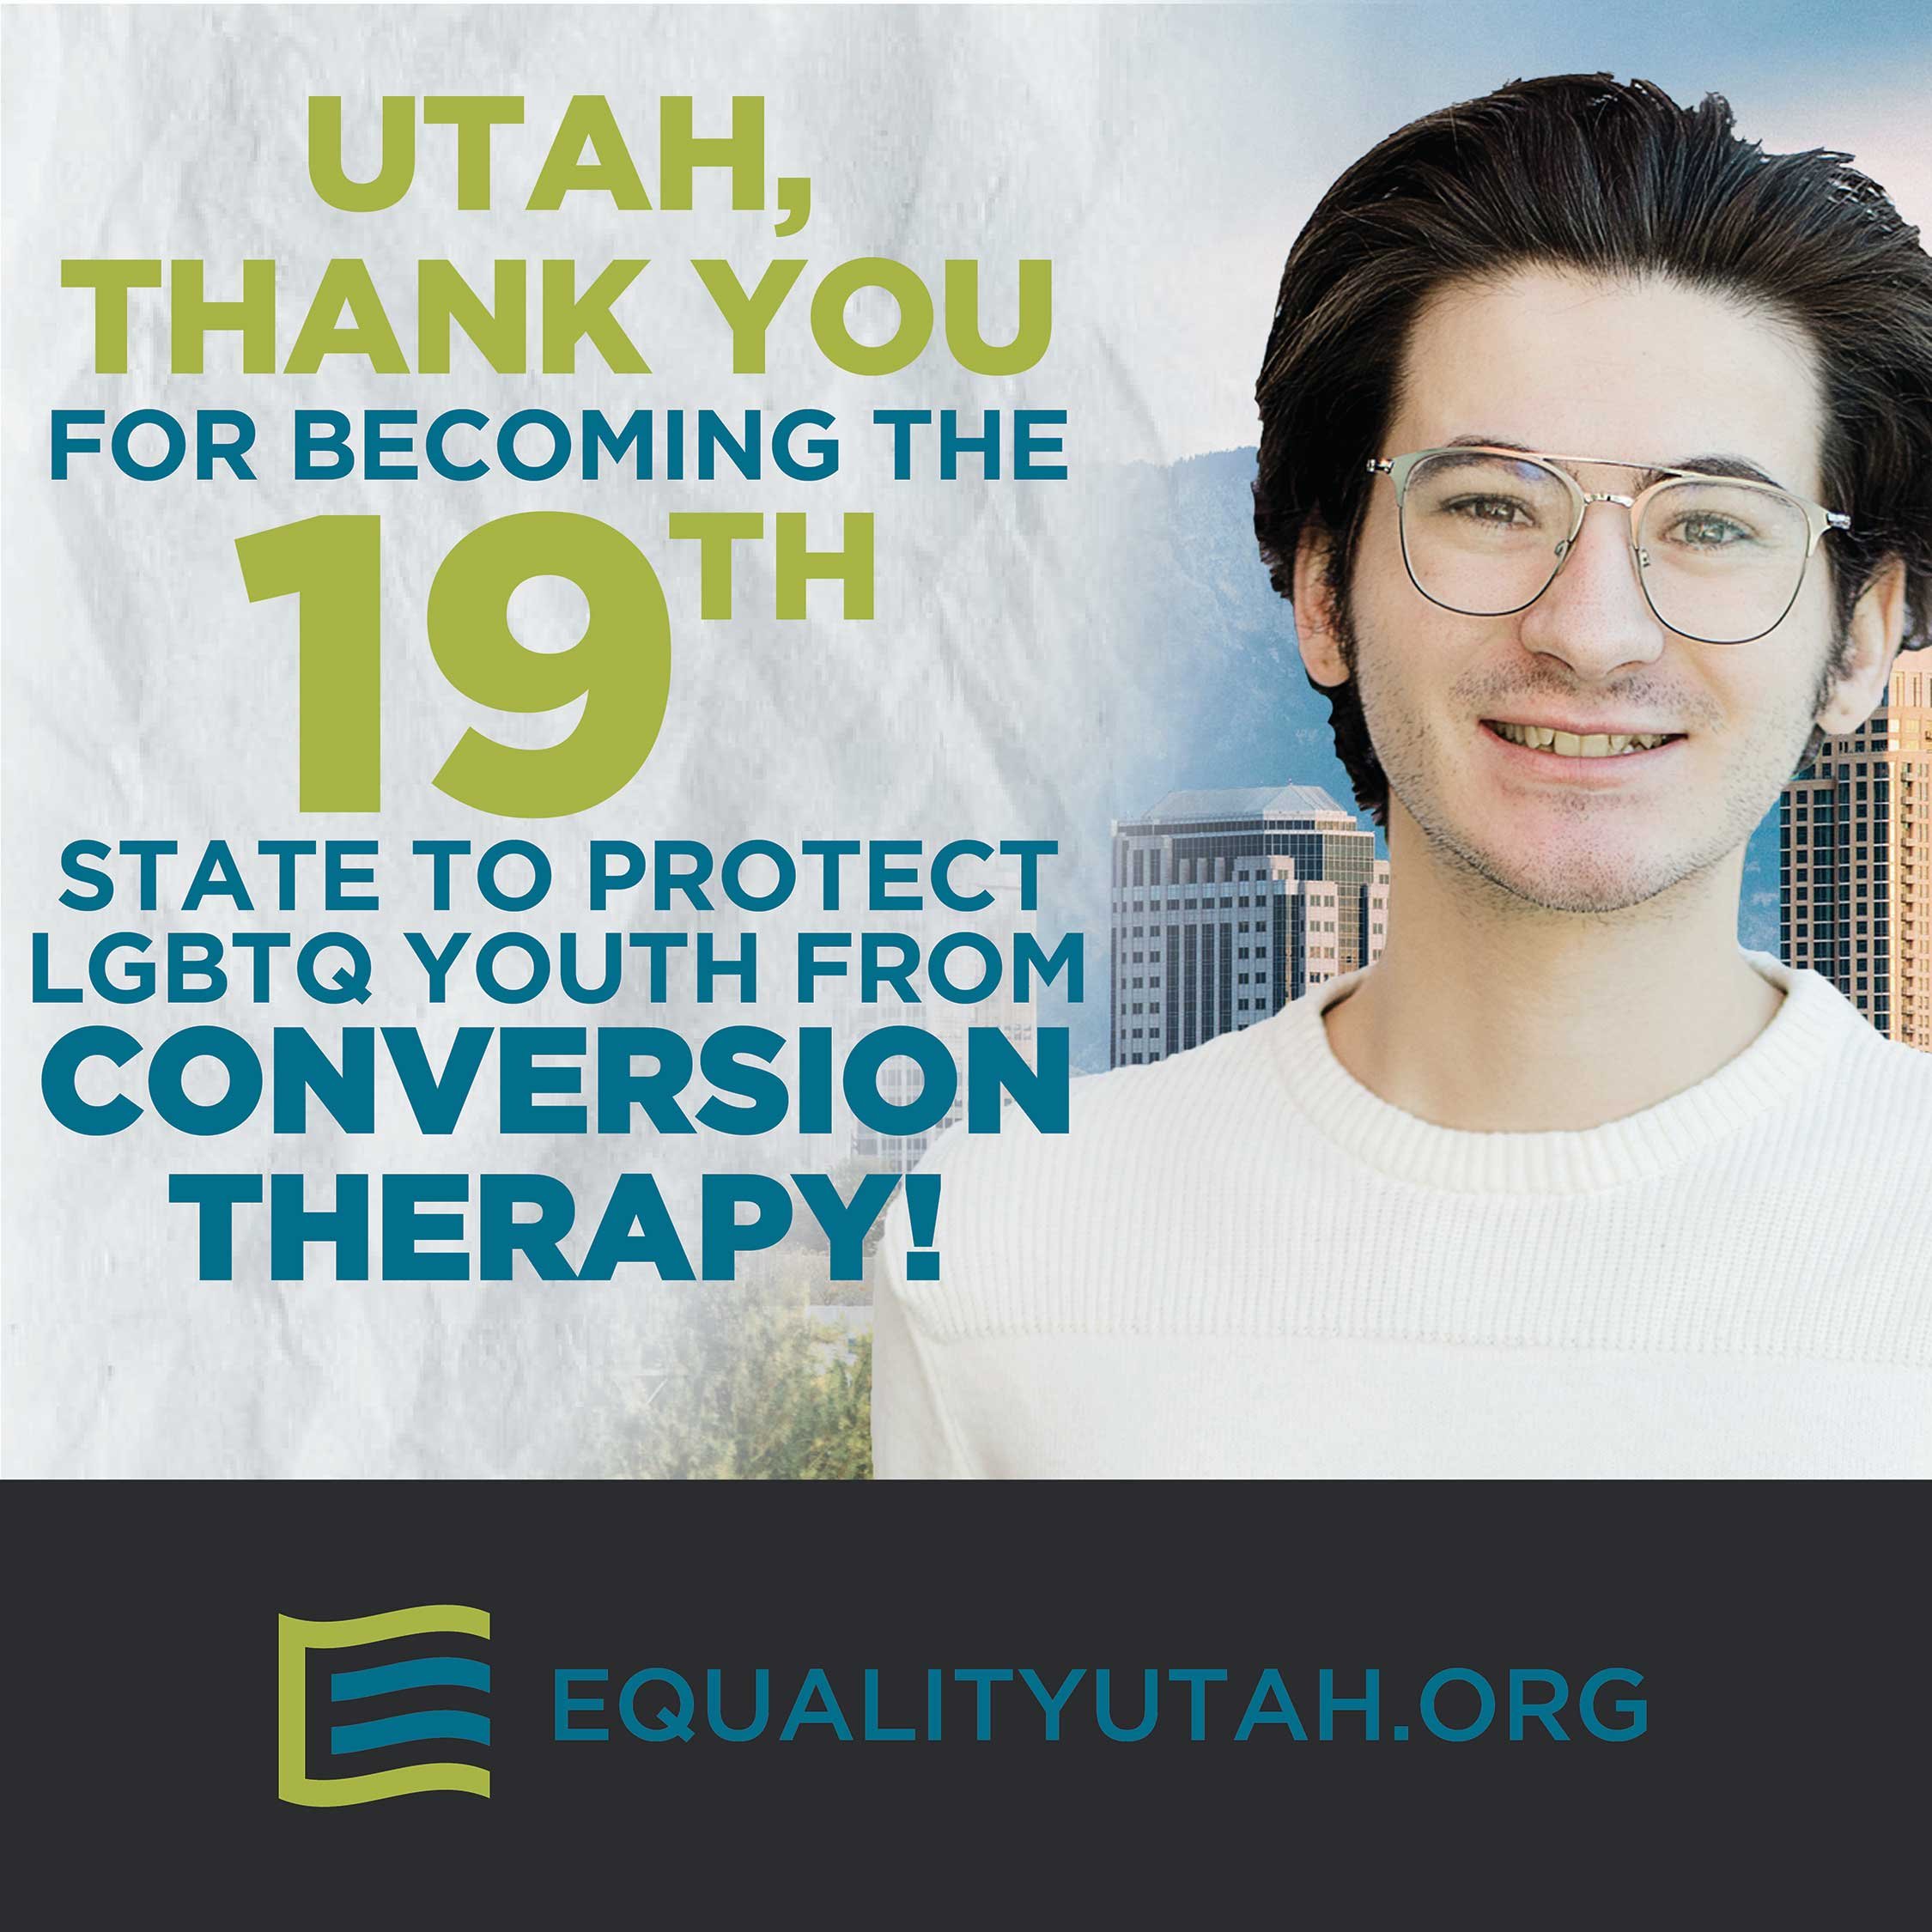 Thank you graphic for Utah becoming the 19th state to ban conversion therapy for minors